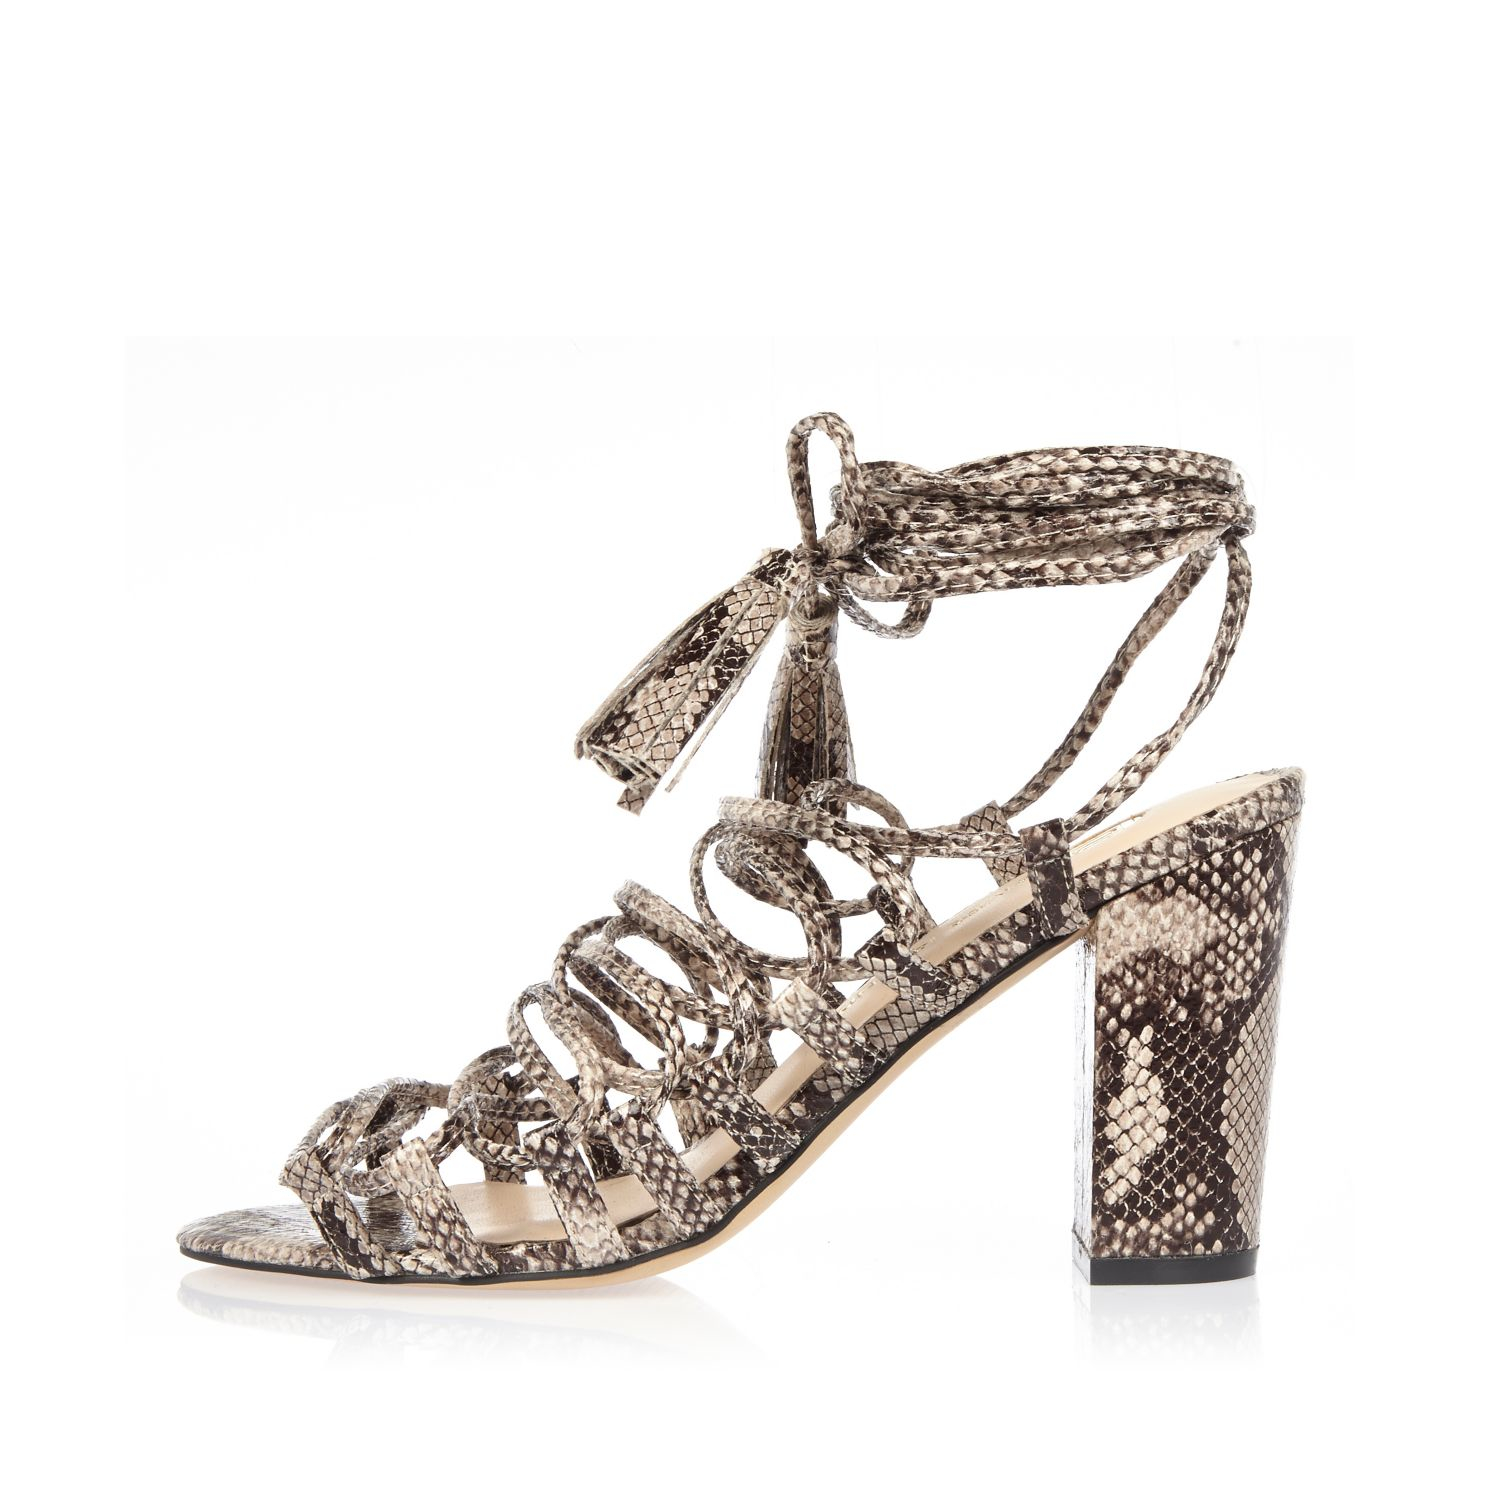 33acd0f07 Lyst - River Island Grey Snake Print Lace-up Block Heel Sandals in Gray